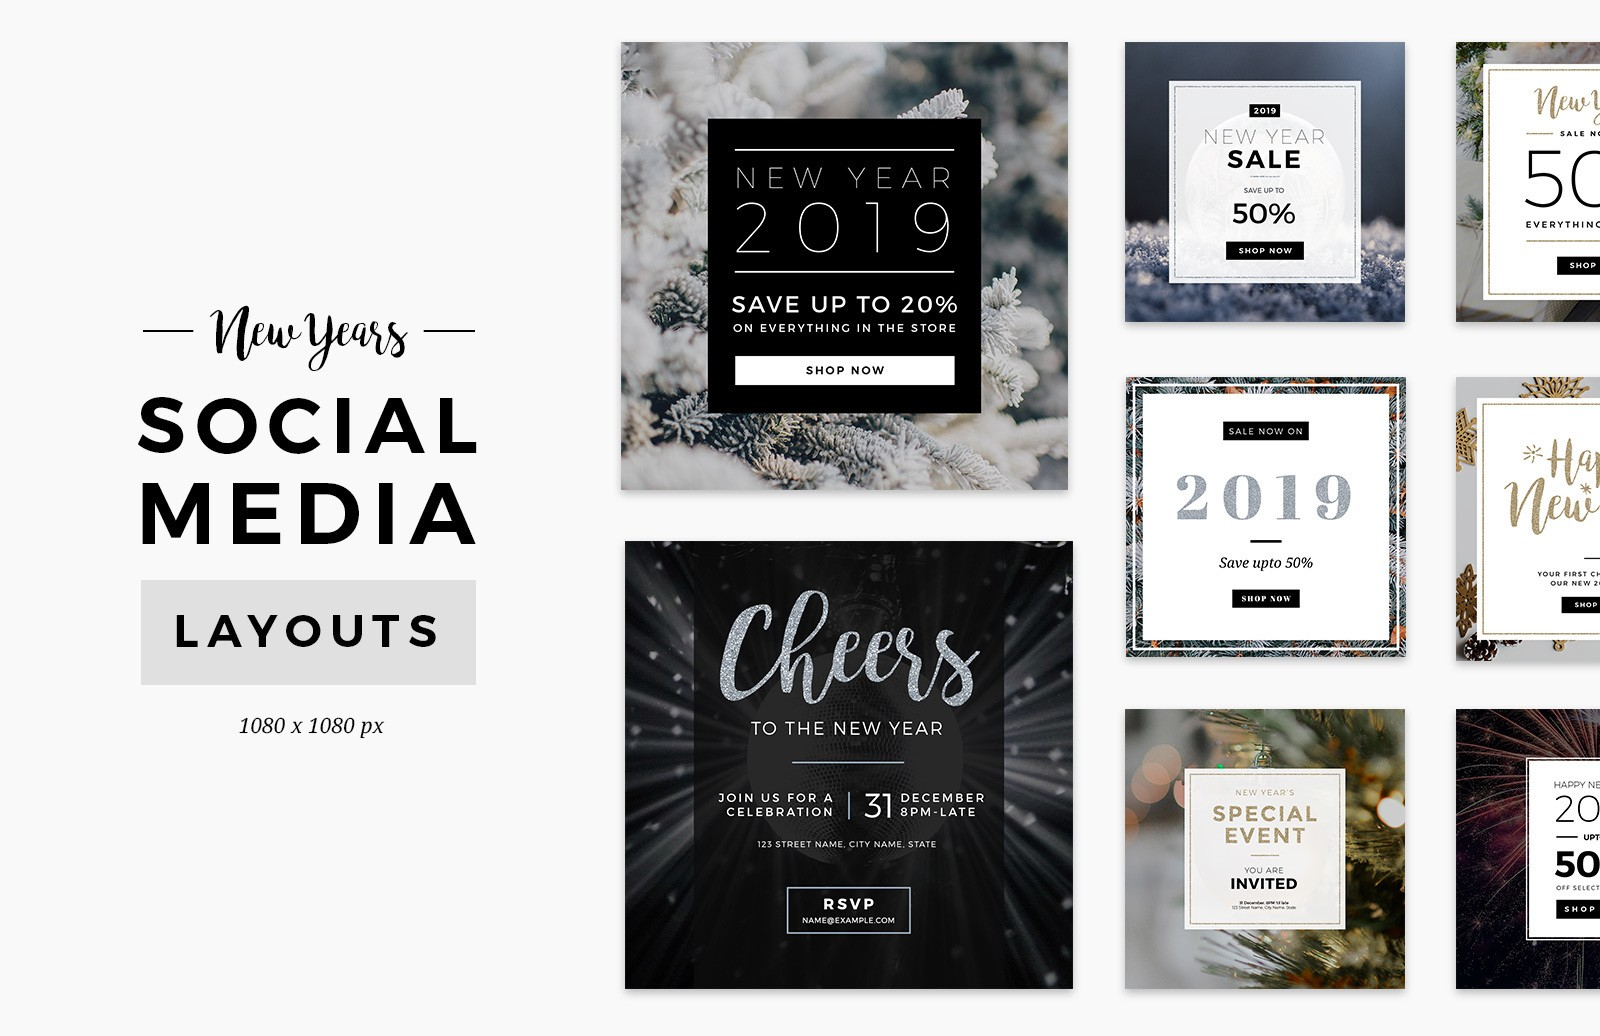 New Years Social Media Layouts